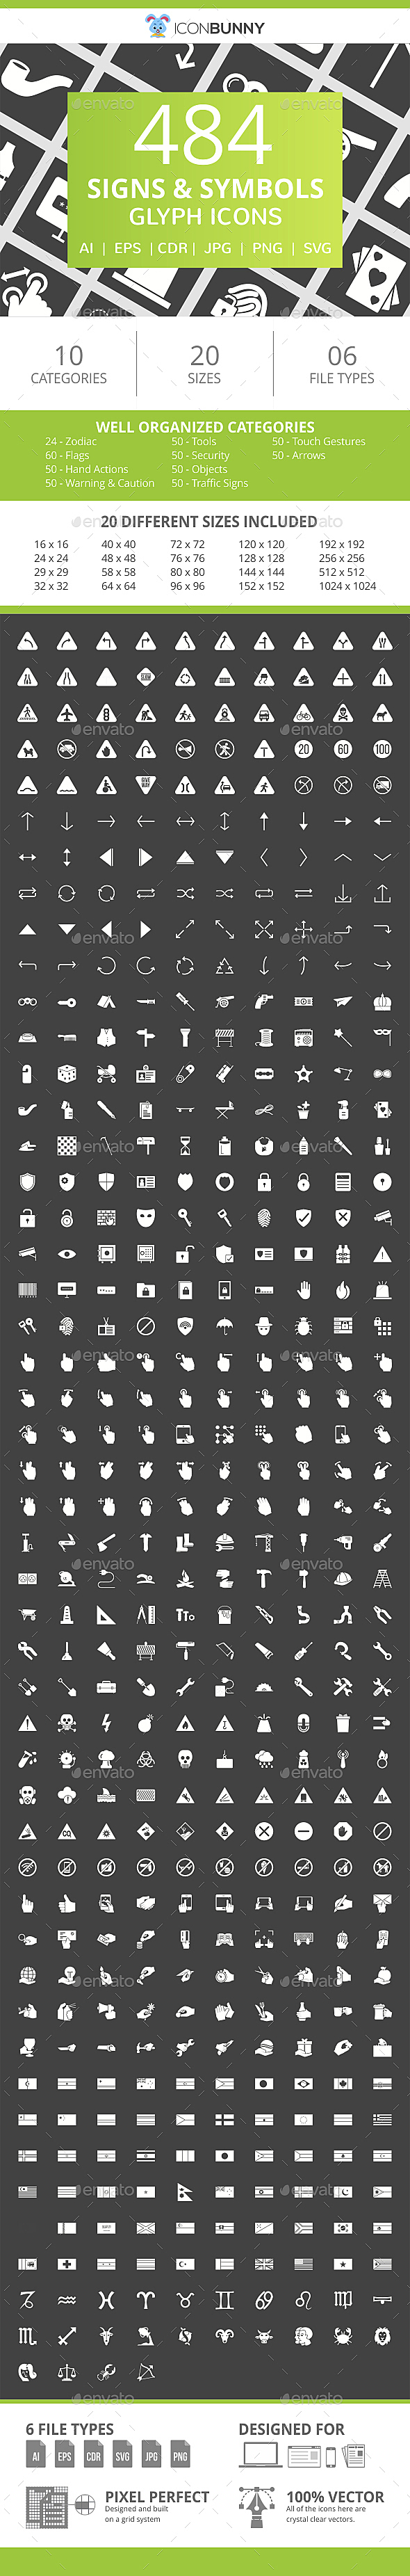 This set includes Zodiac, Flags, Hand Actions, Warning & Caution, Tools, Security, Objects, Traffic SIgns, Touch Gestures, and Arrows Glyph icons. With 484 icons, Iconbunny provides the most essential icons which can be used on all types of platforms including mobile apps, web and graphic design. Each icon is available in different file formats to cover all your needs.    Features    Ready to use for all devices and platforms  6 Different formats: AI, CDR, EPS, JPG, PNG, SVG  Designed using unigrid system   Each Signs & Symbols Icon is designed for maximum usability   100% vector icons – Easy to edit and scale   20 PNG File Sizes:    16×16 24×24 29×29 32×32 40×40 48×48 58×58 64×64 72×72 76×76 80×80 96×96 120×120 128×128 144×144 152×